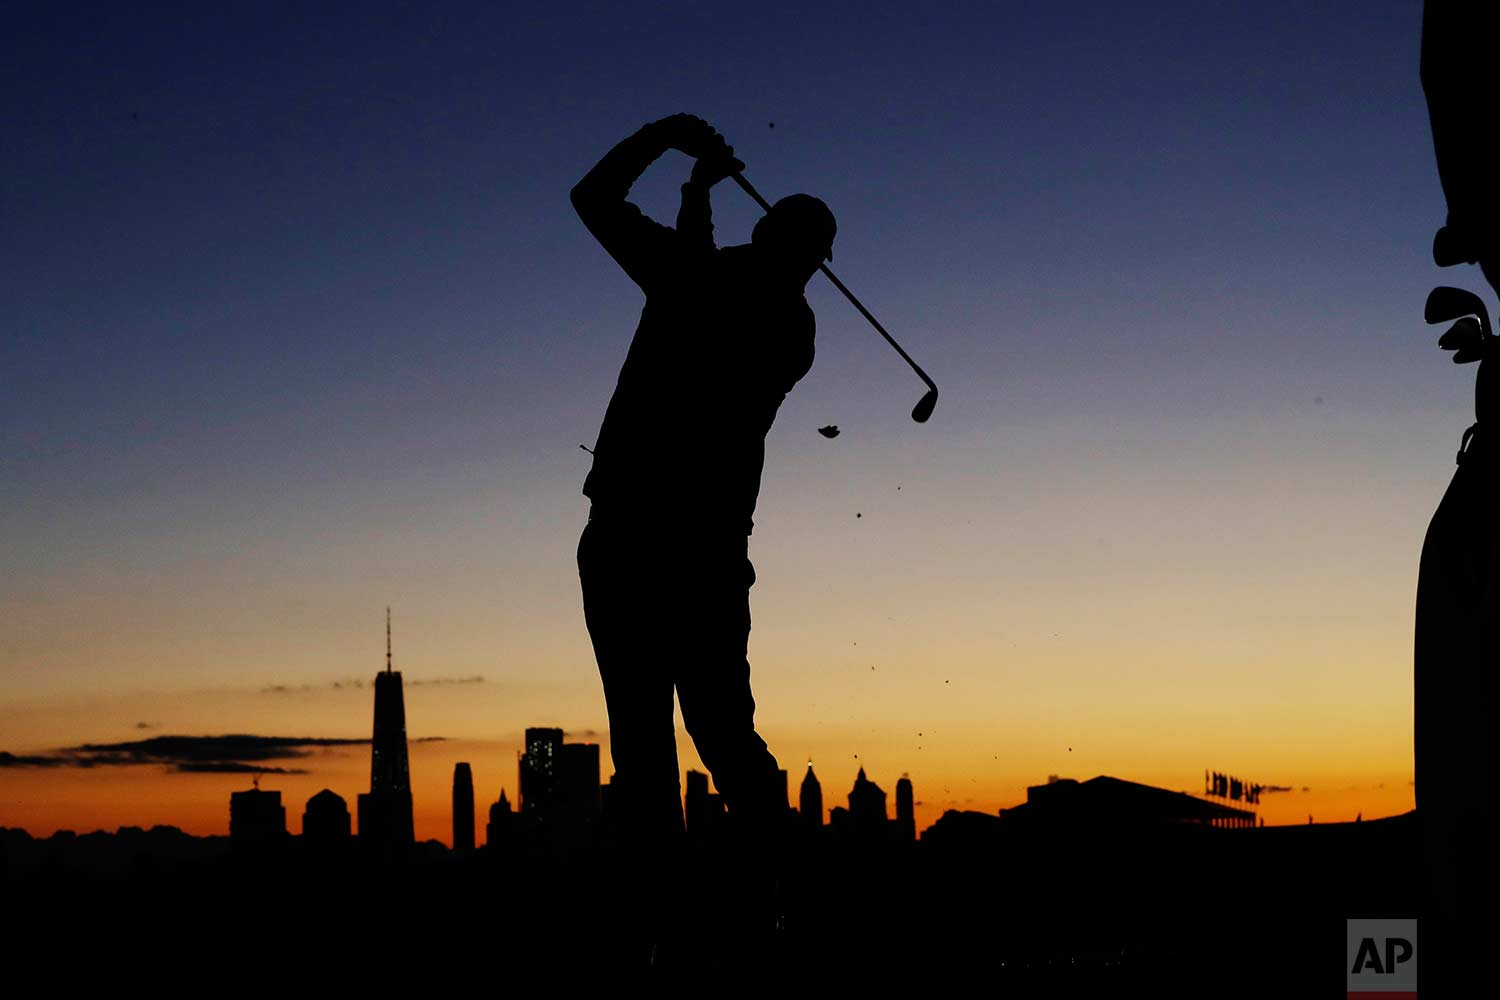 Marc Leishman practices on the driving range before the start of play during the third day of the Presidents Cup at Liberty National Golf Club in Jersey City, N.J., Saturday, Sept. 30, 2017. (AP Photo/Julio Cortez)